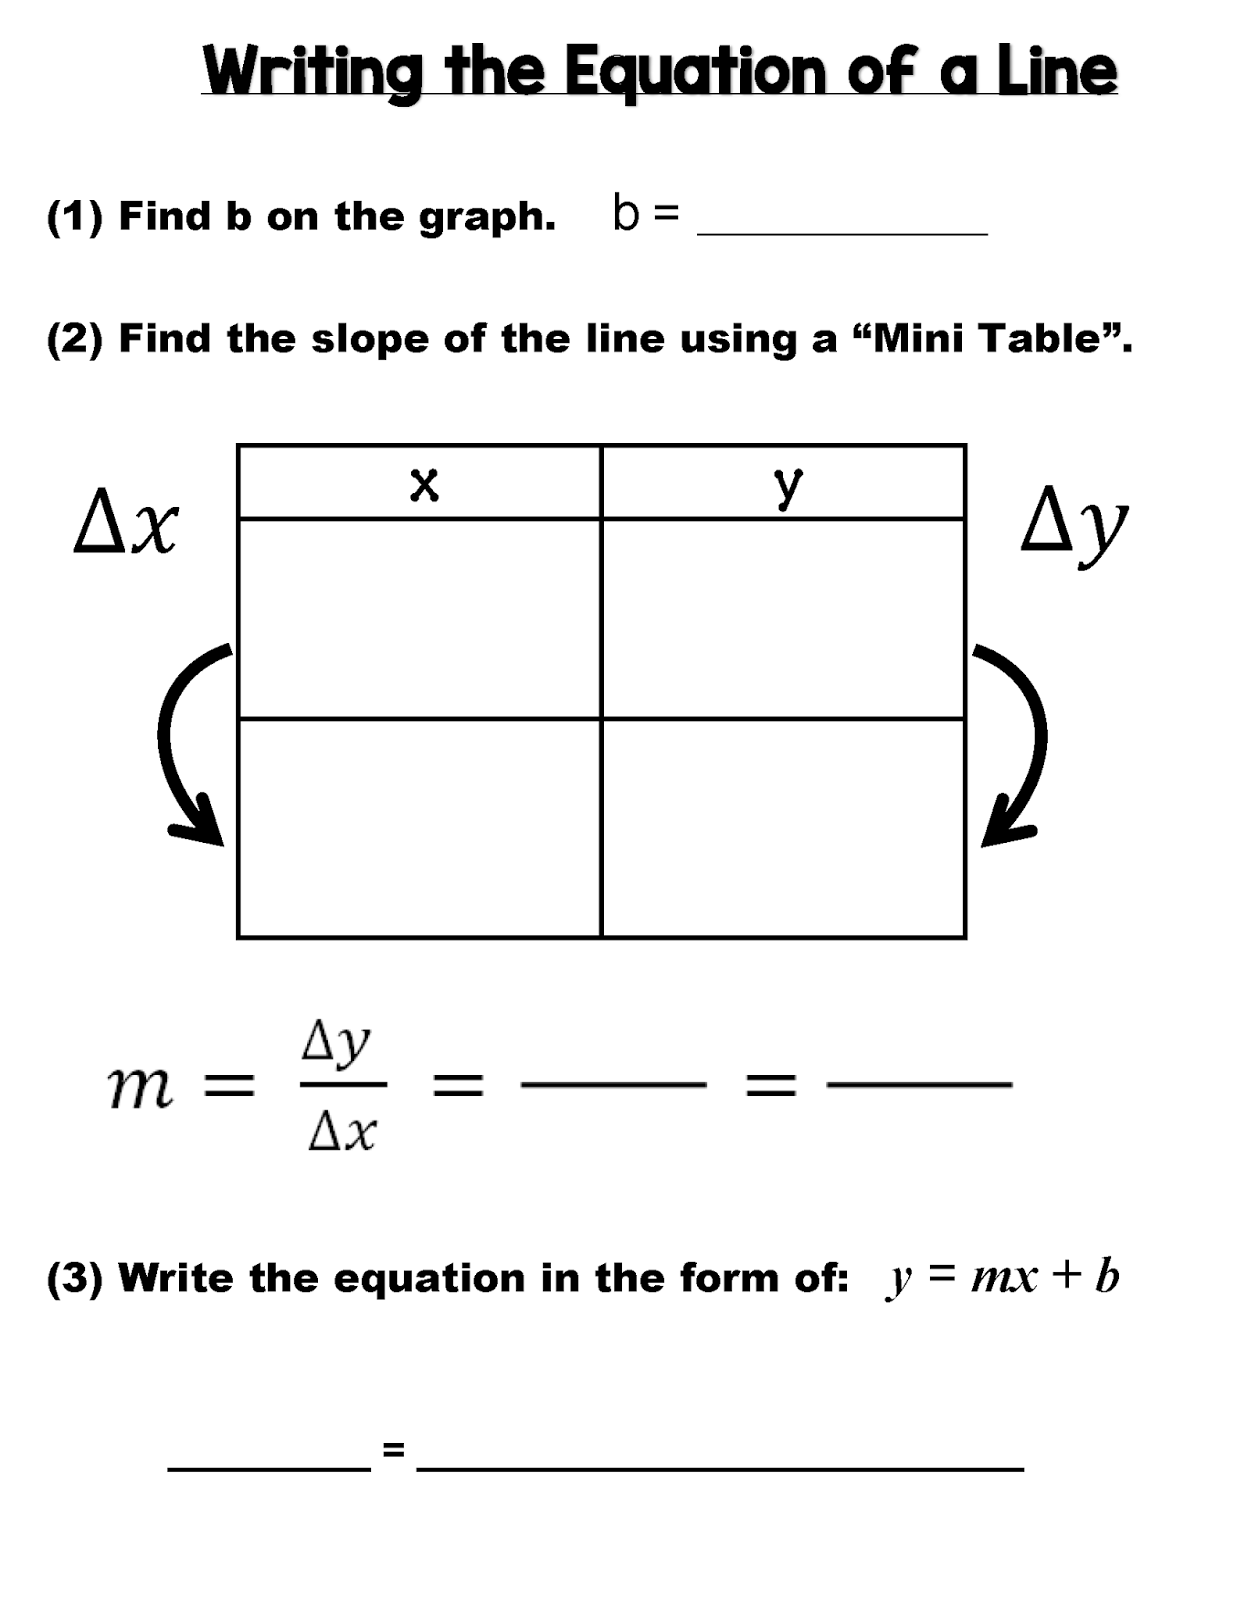 Unit 1b Linear Relationships In This Unit We Focused On